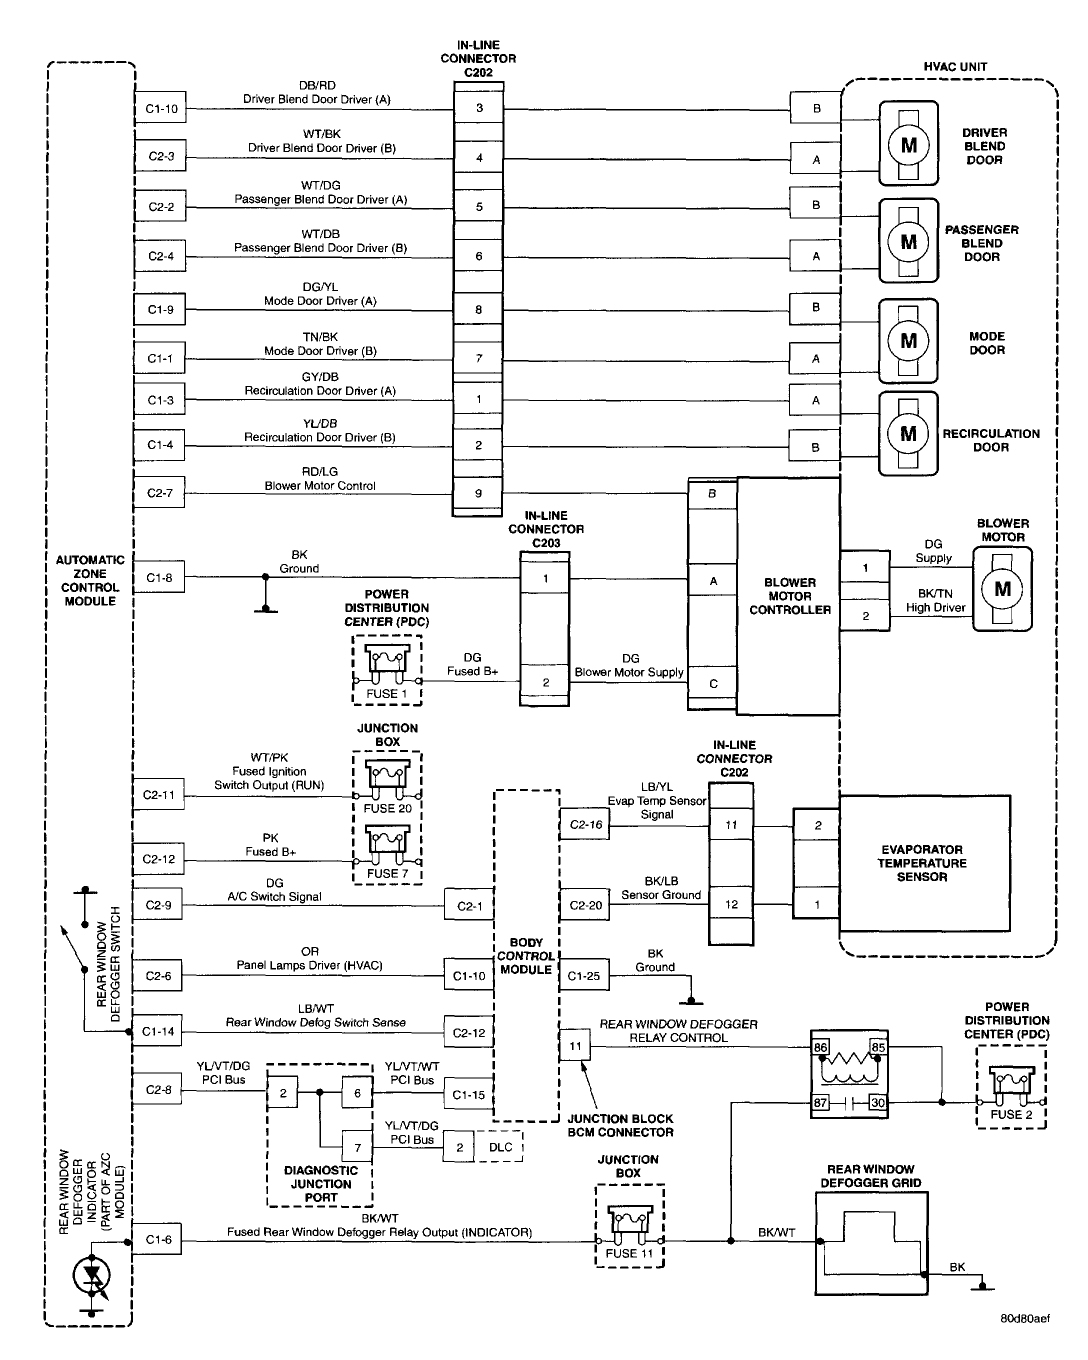 2003 Jeep Liberty Wiring - Wiring Diagram Schematics  Jeep Liberty Control Wiring Diagrams on jeep liberty shift solenoid, subaru baja wiring diagram, saturn aura wiring diagram, 2008 jeep wiring diagram, lexus gx wiring diagram, jeep liberty relay location, kia forte wiring diagram, jeep liberty fan belt, jeep liberty ignition wiring, 2004 jeep wiring diagram, isuzu hombre wiring diagram, jeep liberty no crank, jeep wrangler wiring diagram, jeep liberty distributor, jeep liberty clutch, mercury milan wiring diagram, volkswagen golf wiring diagram, jeep liberty engine swap, ford econoline van wiring diagram, jeep liberty gas gauge,